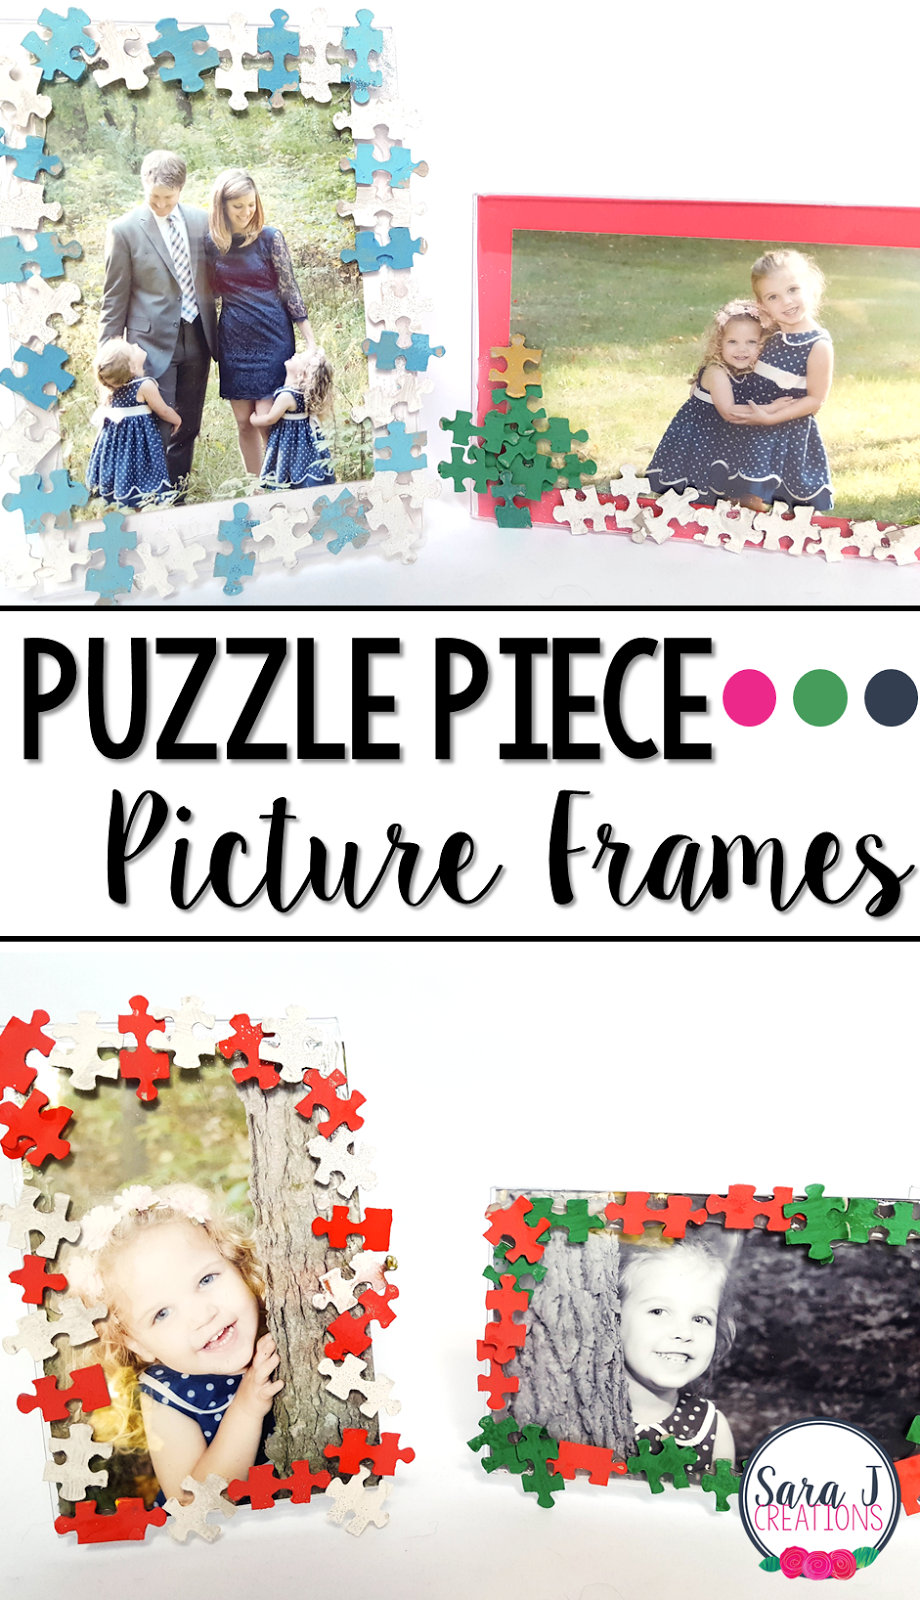 This DIY Christmas gift idea is the perfect craft for kids to make for their family members.  I love the different colored puzzle pieces on the picture frame!